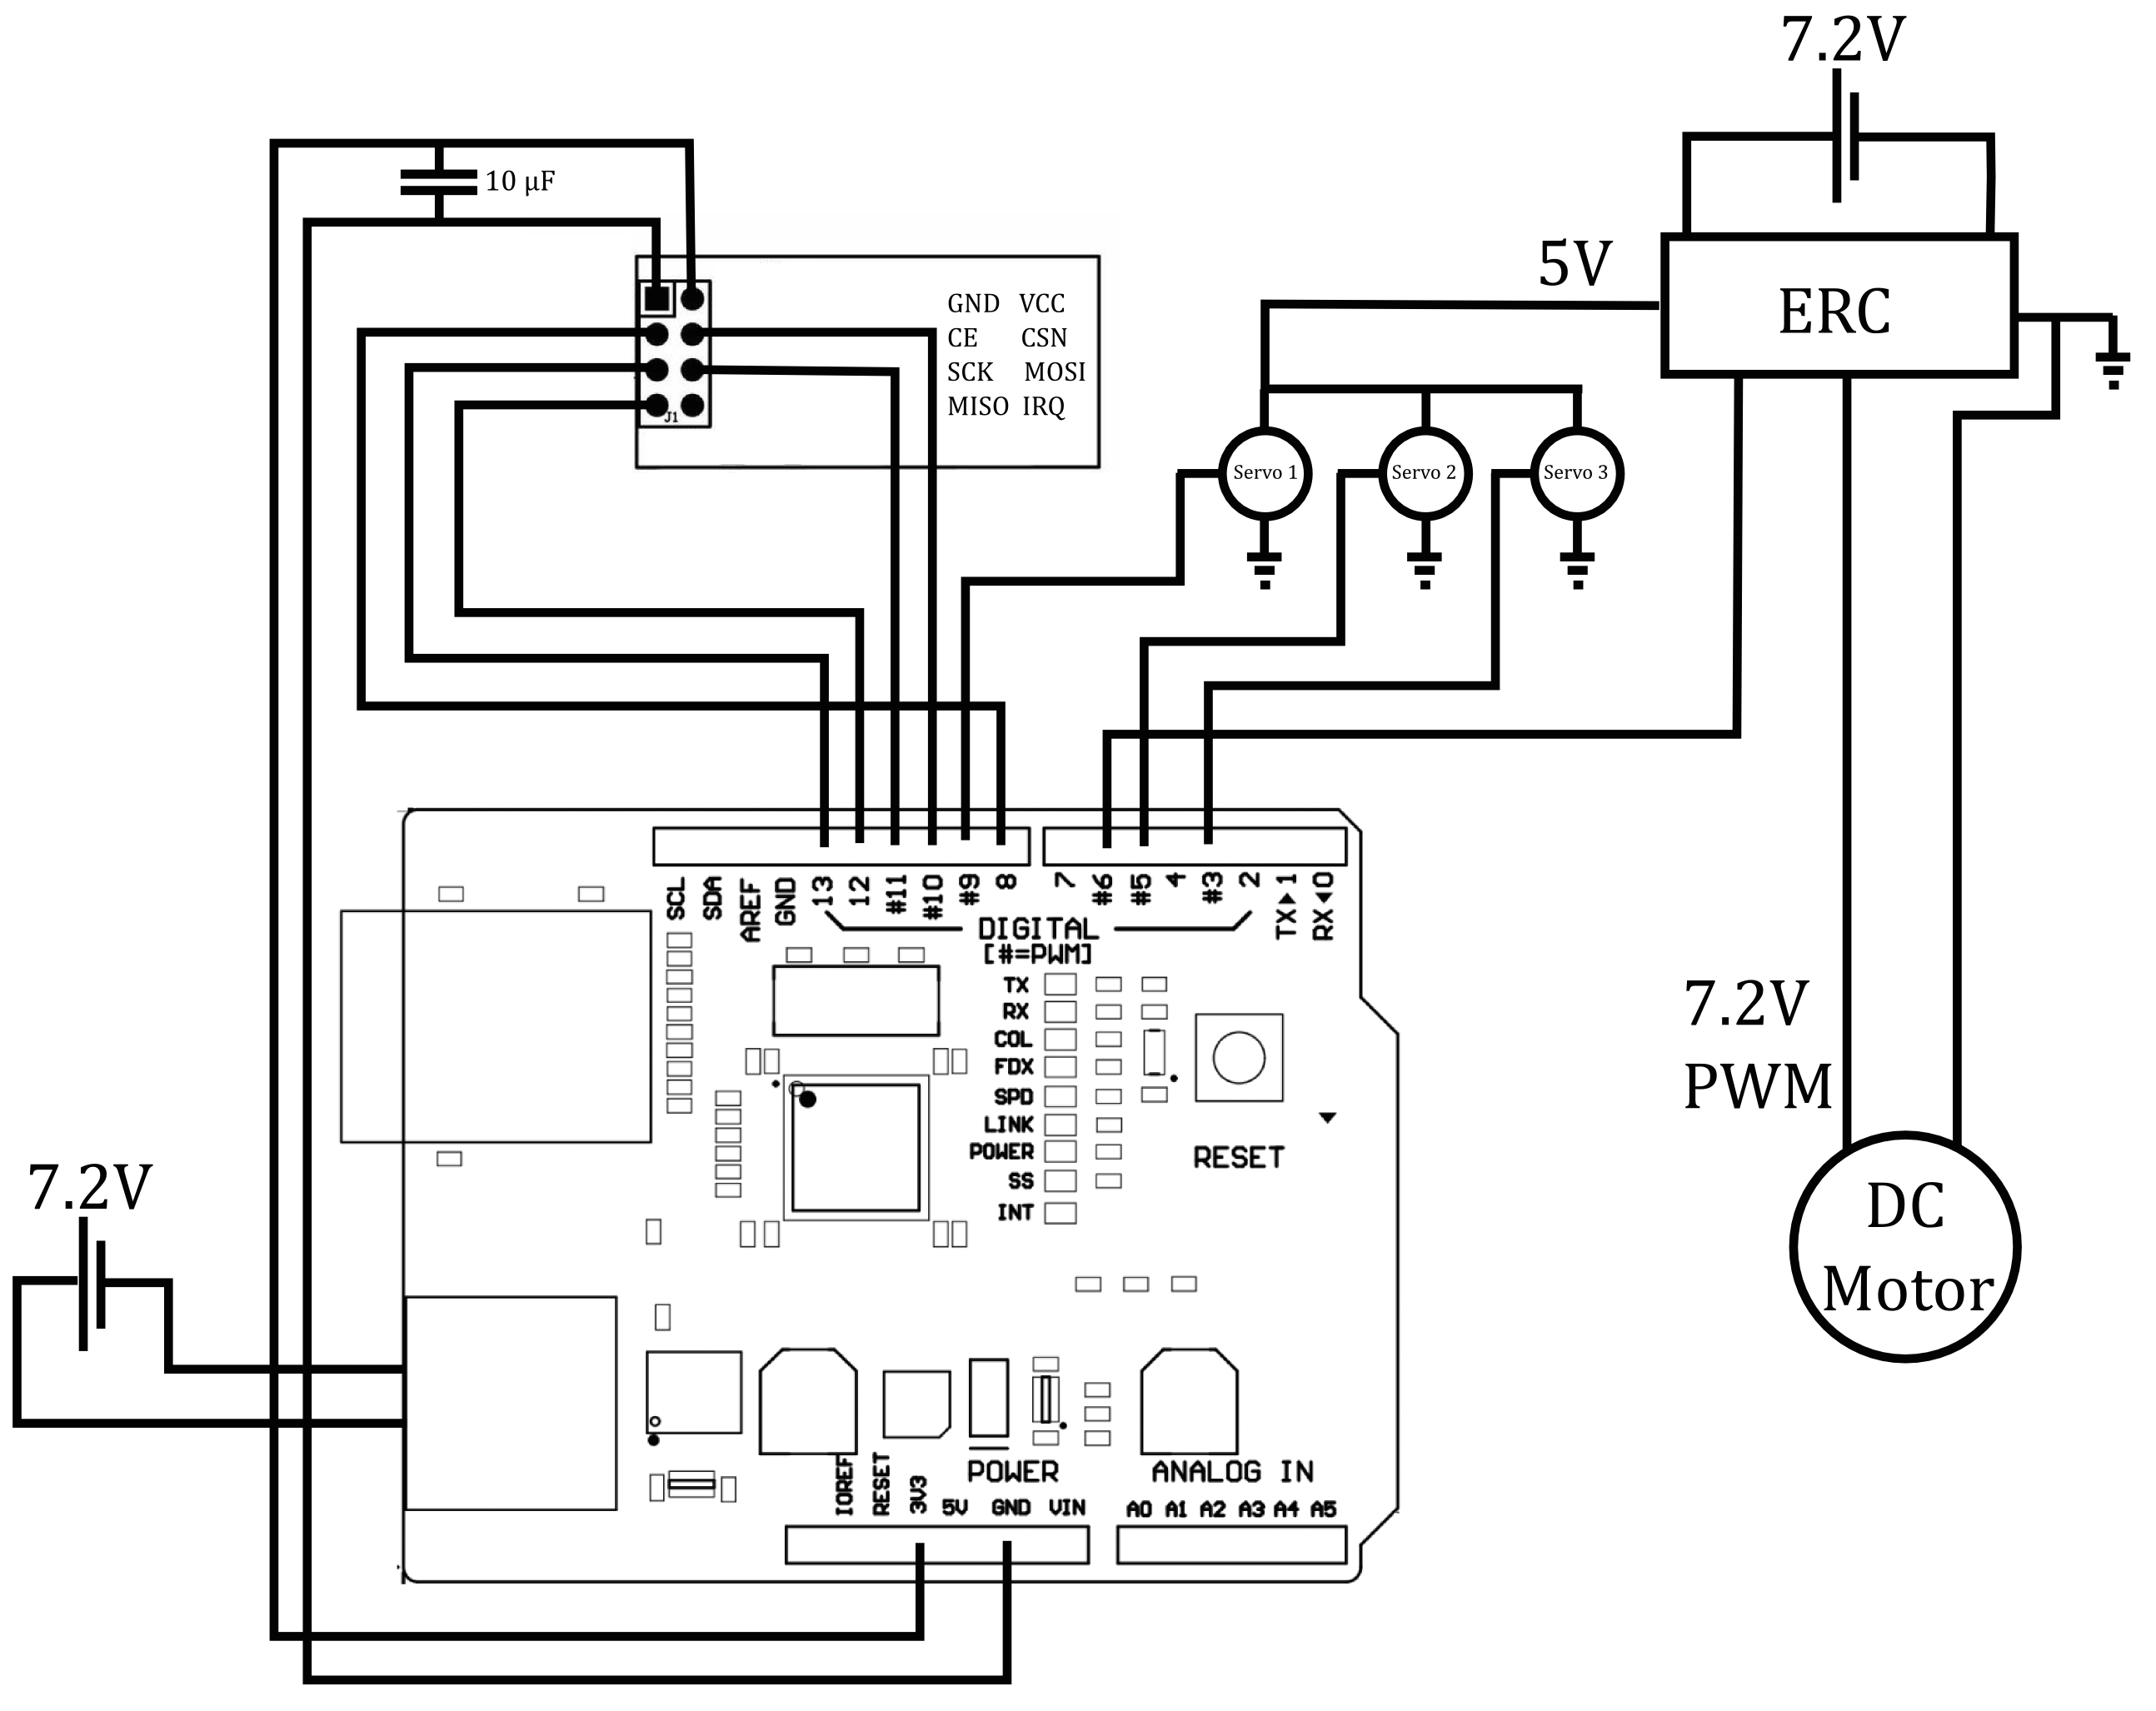 Pc Racing Set Controlled Rc Car With Video Streaming Mechatronics In Circuit As Well Battery Watt Meter Schematic Additionally Dc File Receiver